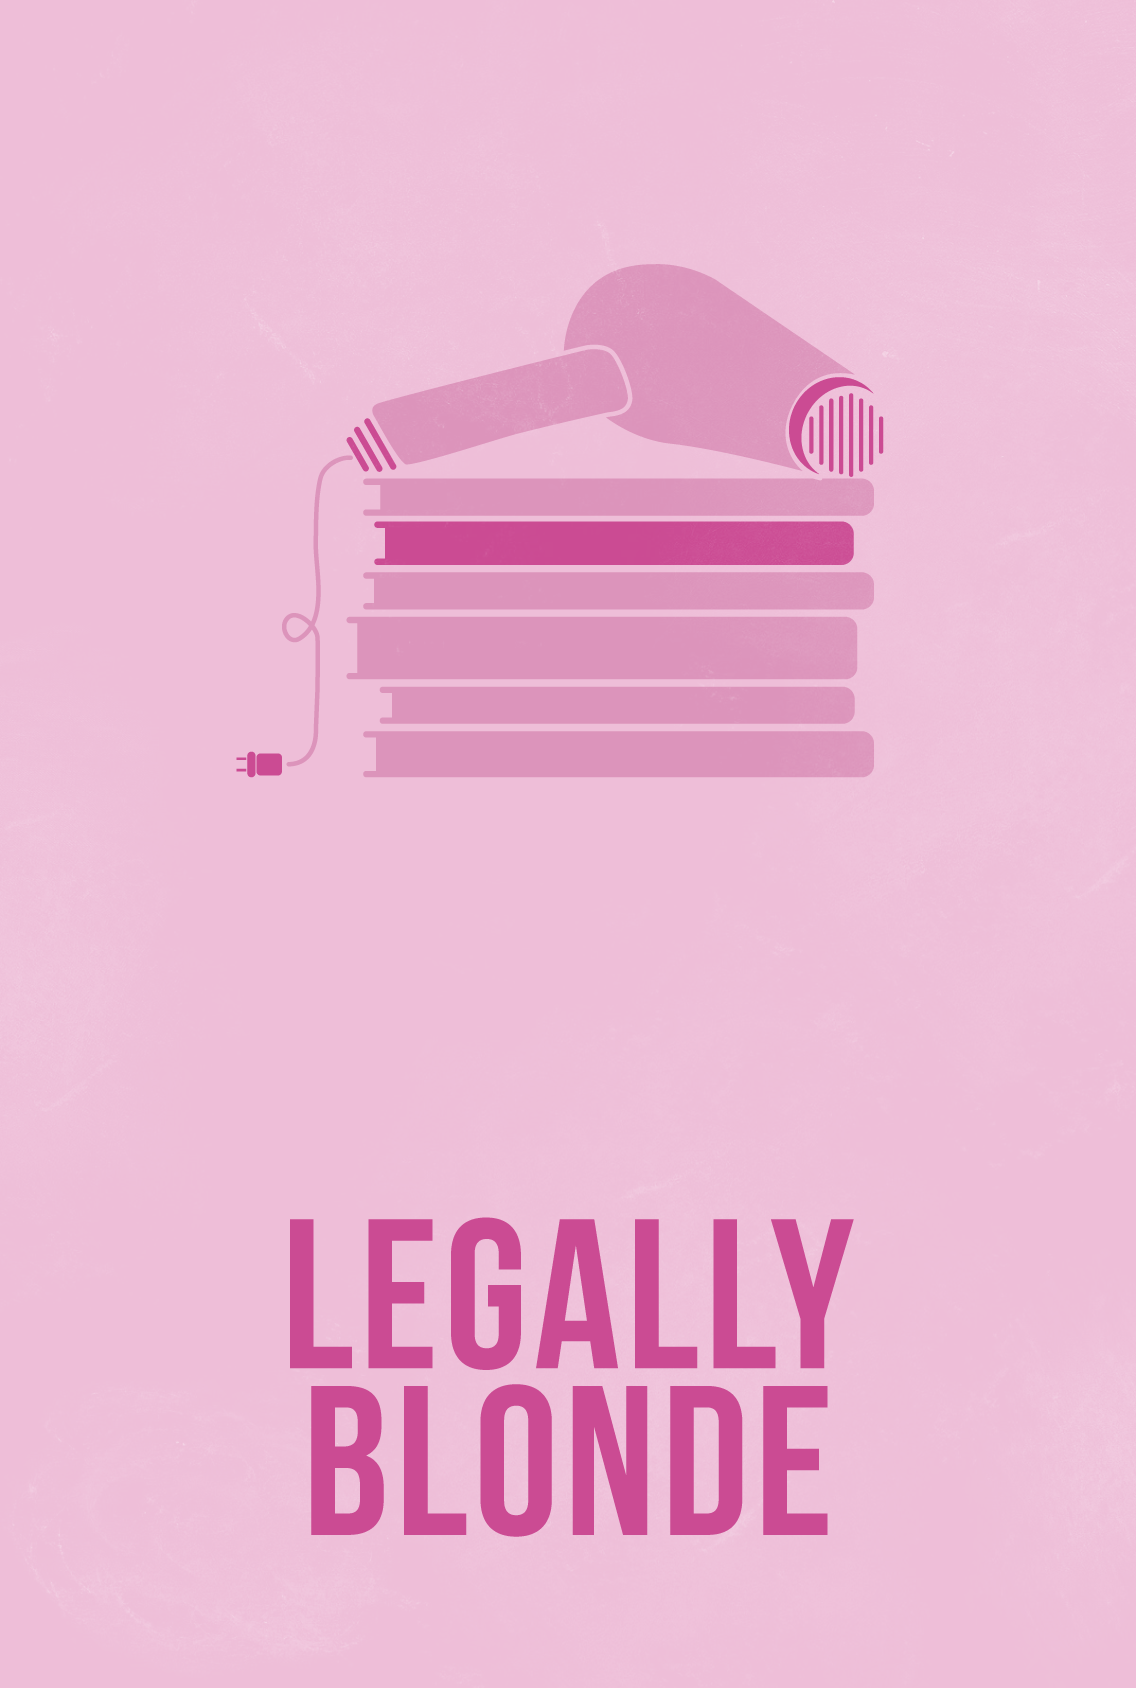 legallyblondevertical